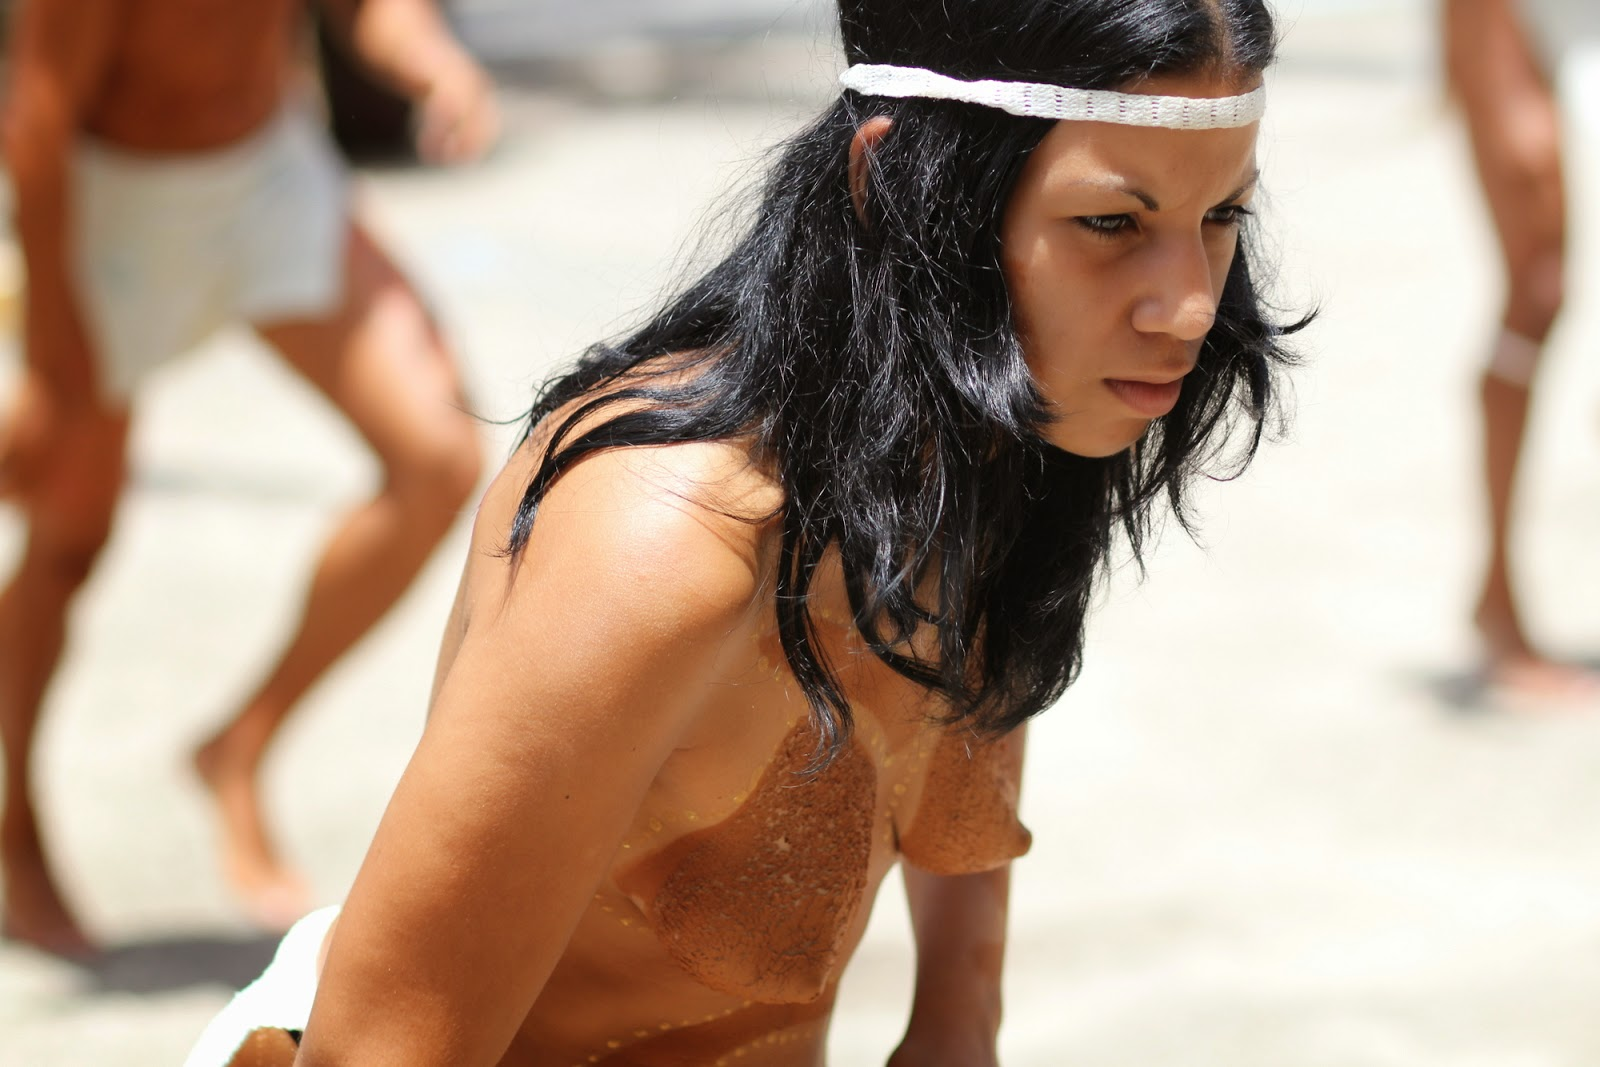 Native American Indian Women Naked